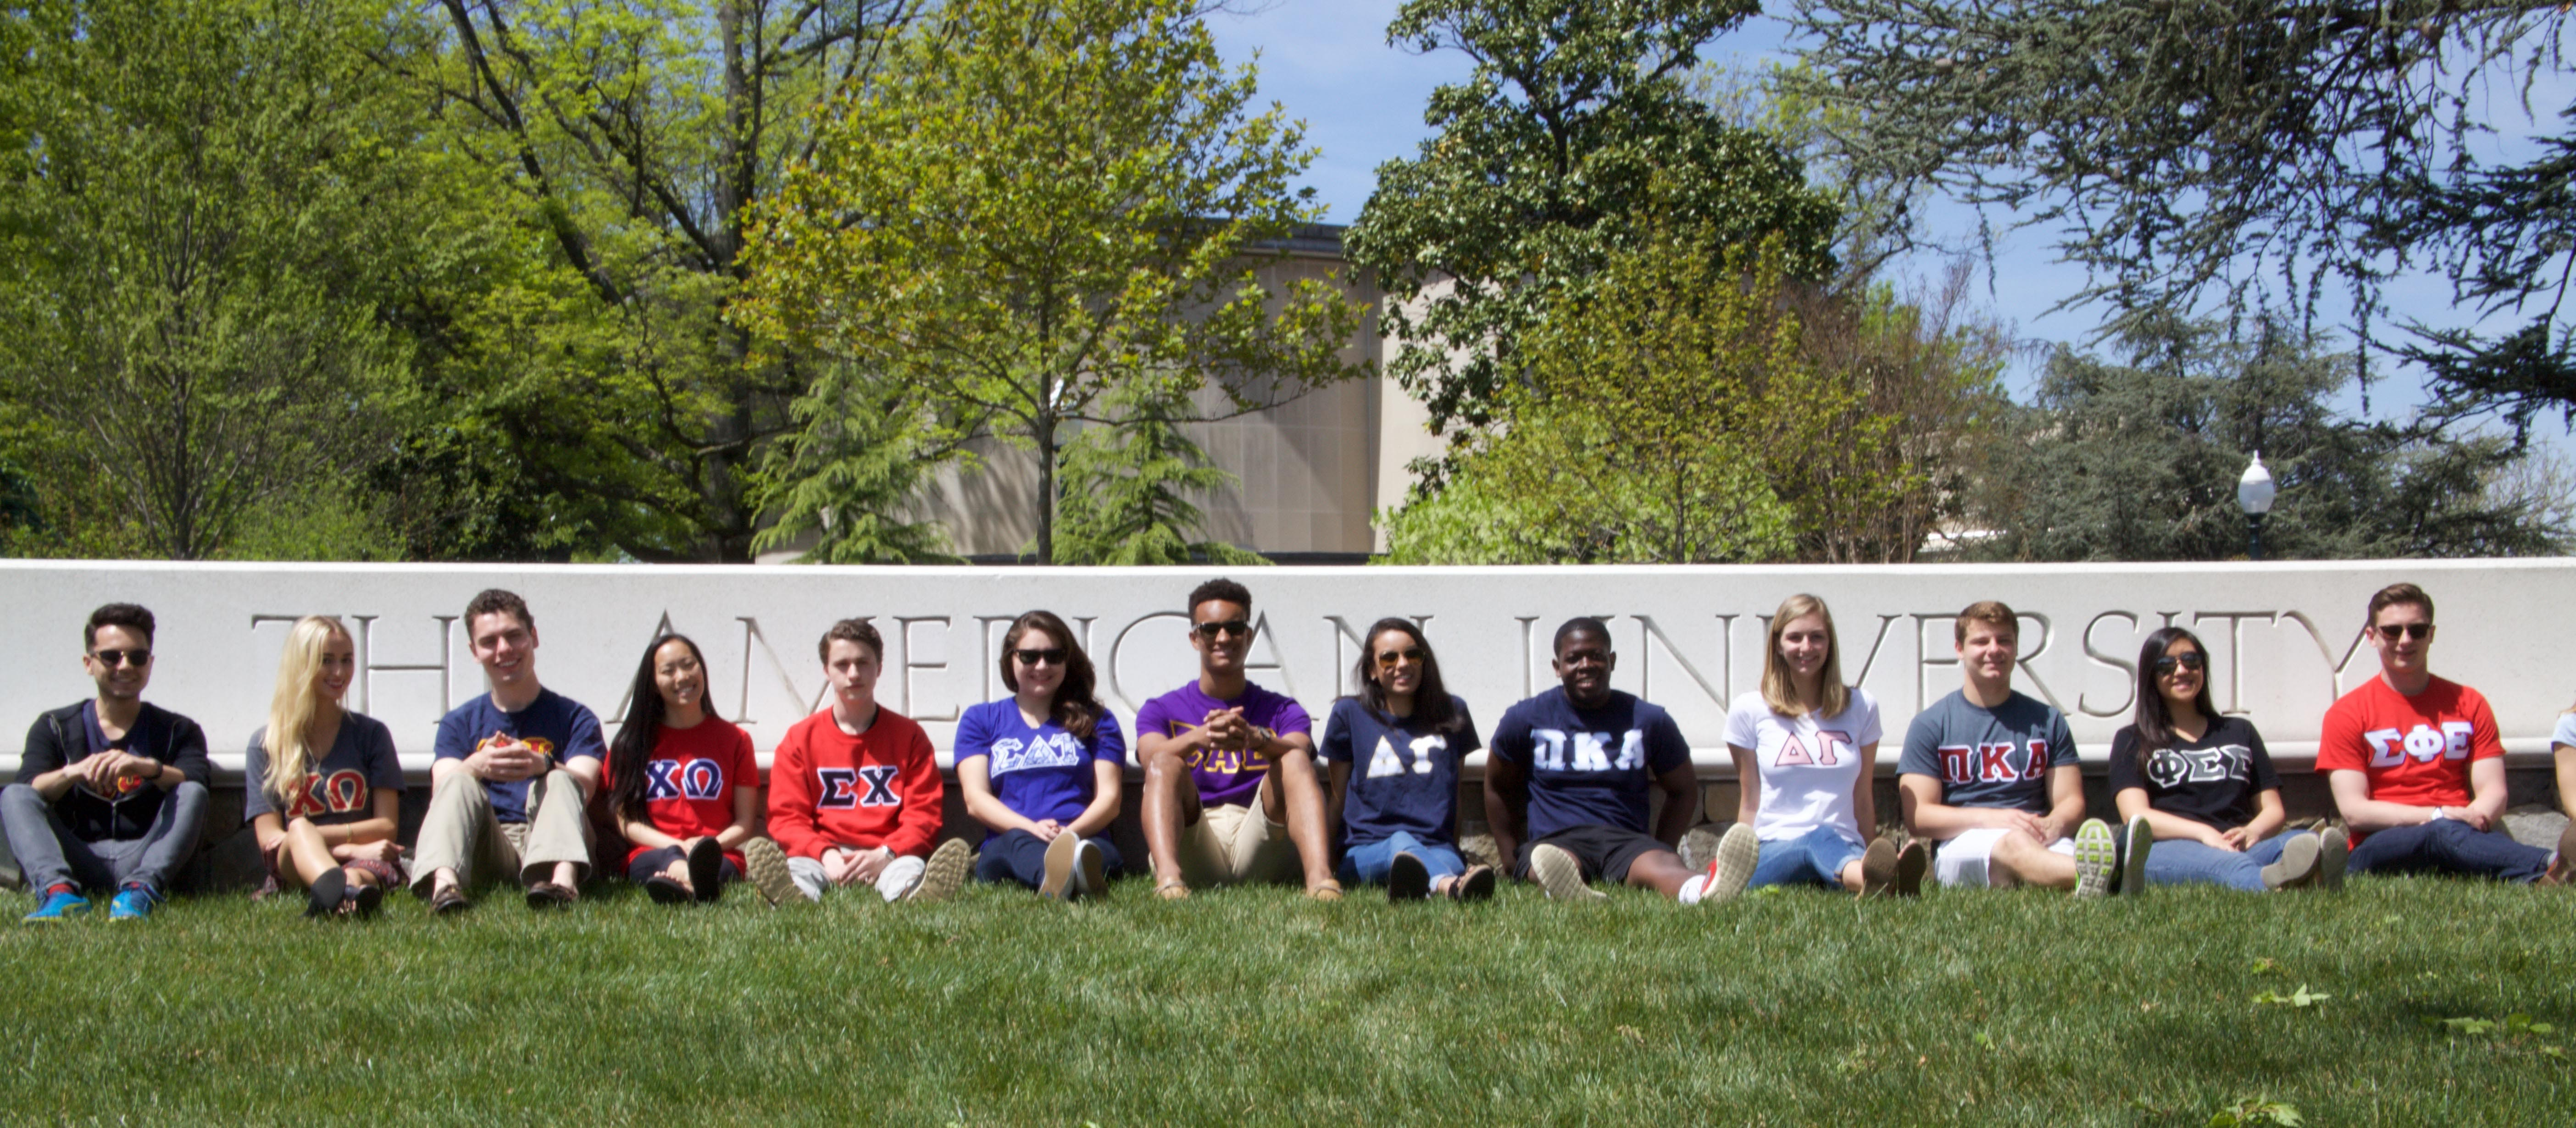 greek life in american campuses essay These experiences are further enhanced by an engaging residential campus  a  lifetime of living and learning and helped our graduates achieve uncommon  success in a wide  this leads us to believe the writer is careless, lazy, and  entitled.